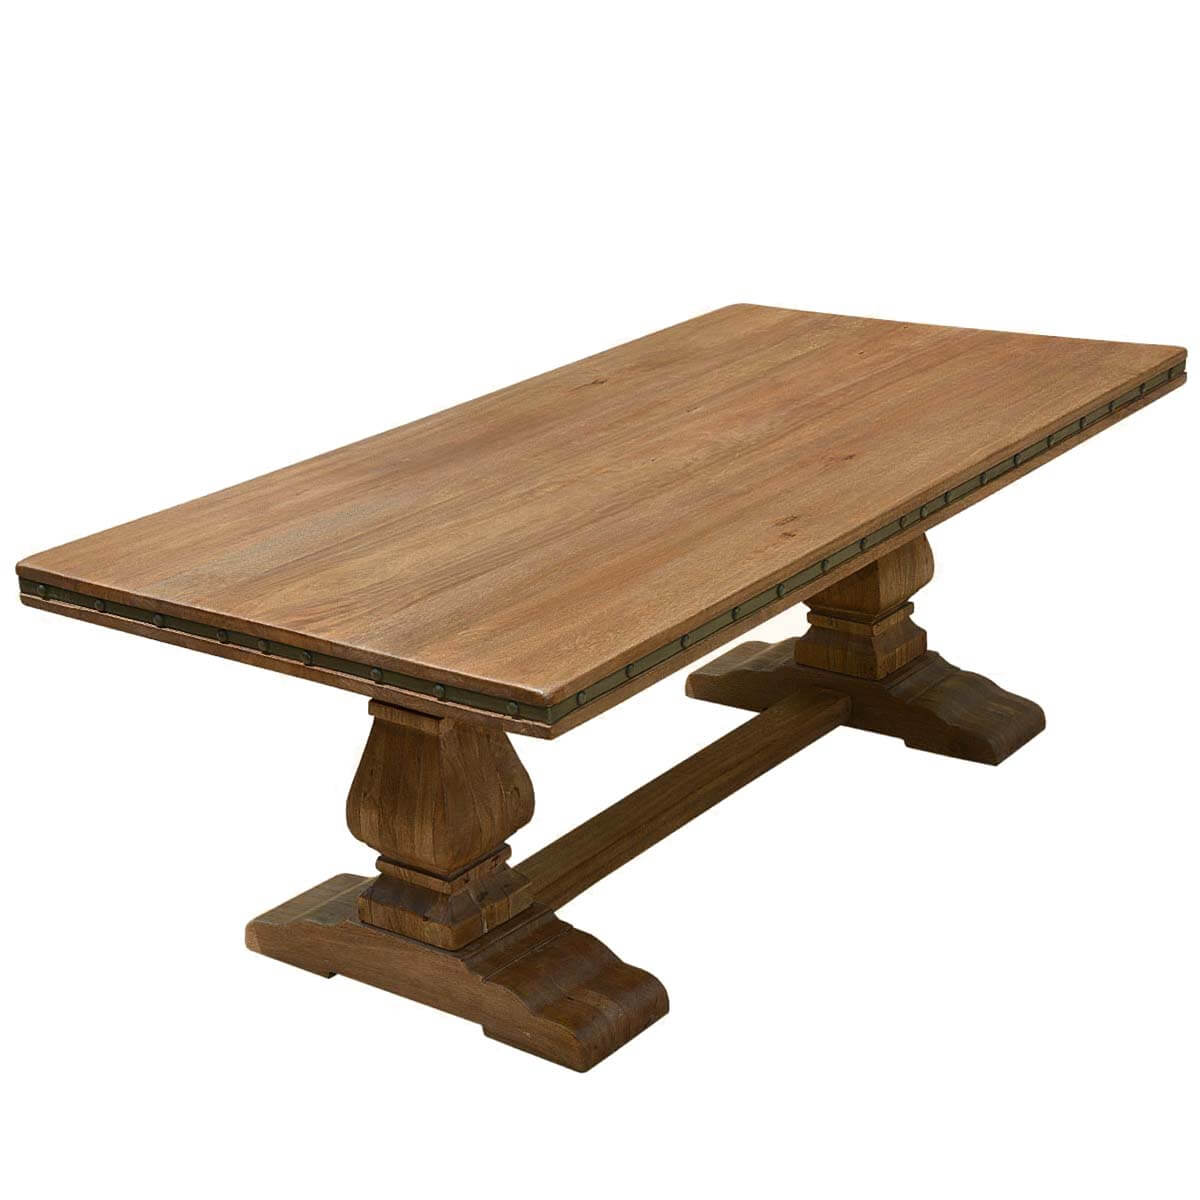 Rustic solid wood trestle pedestal base harvest dining table Rustic wood dining table